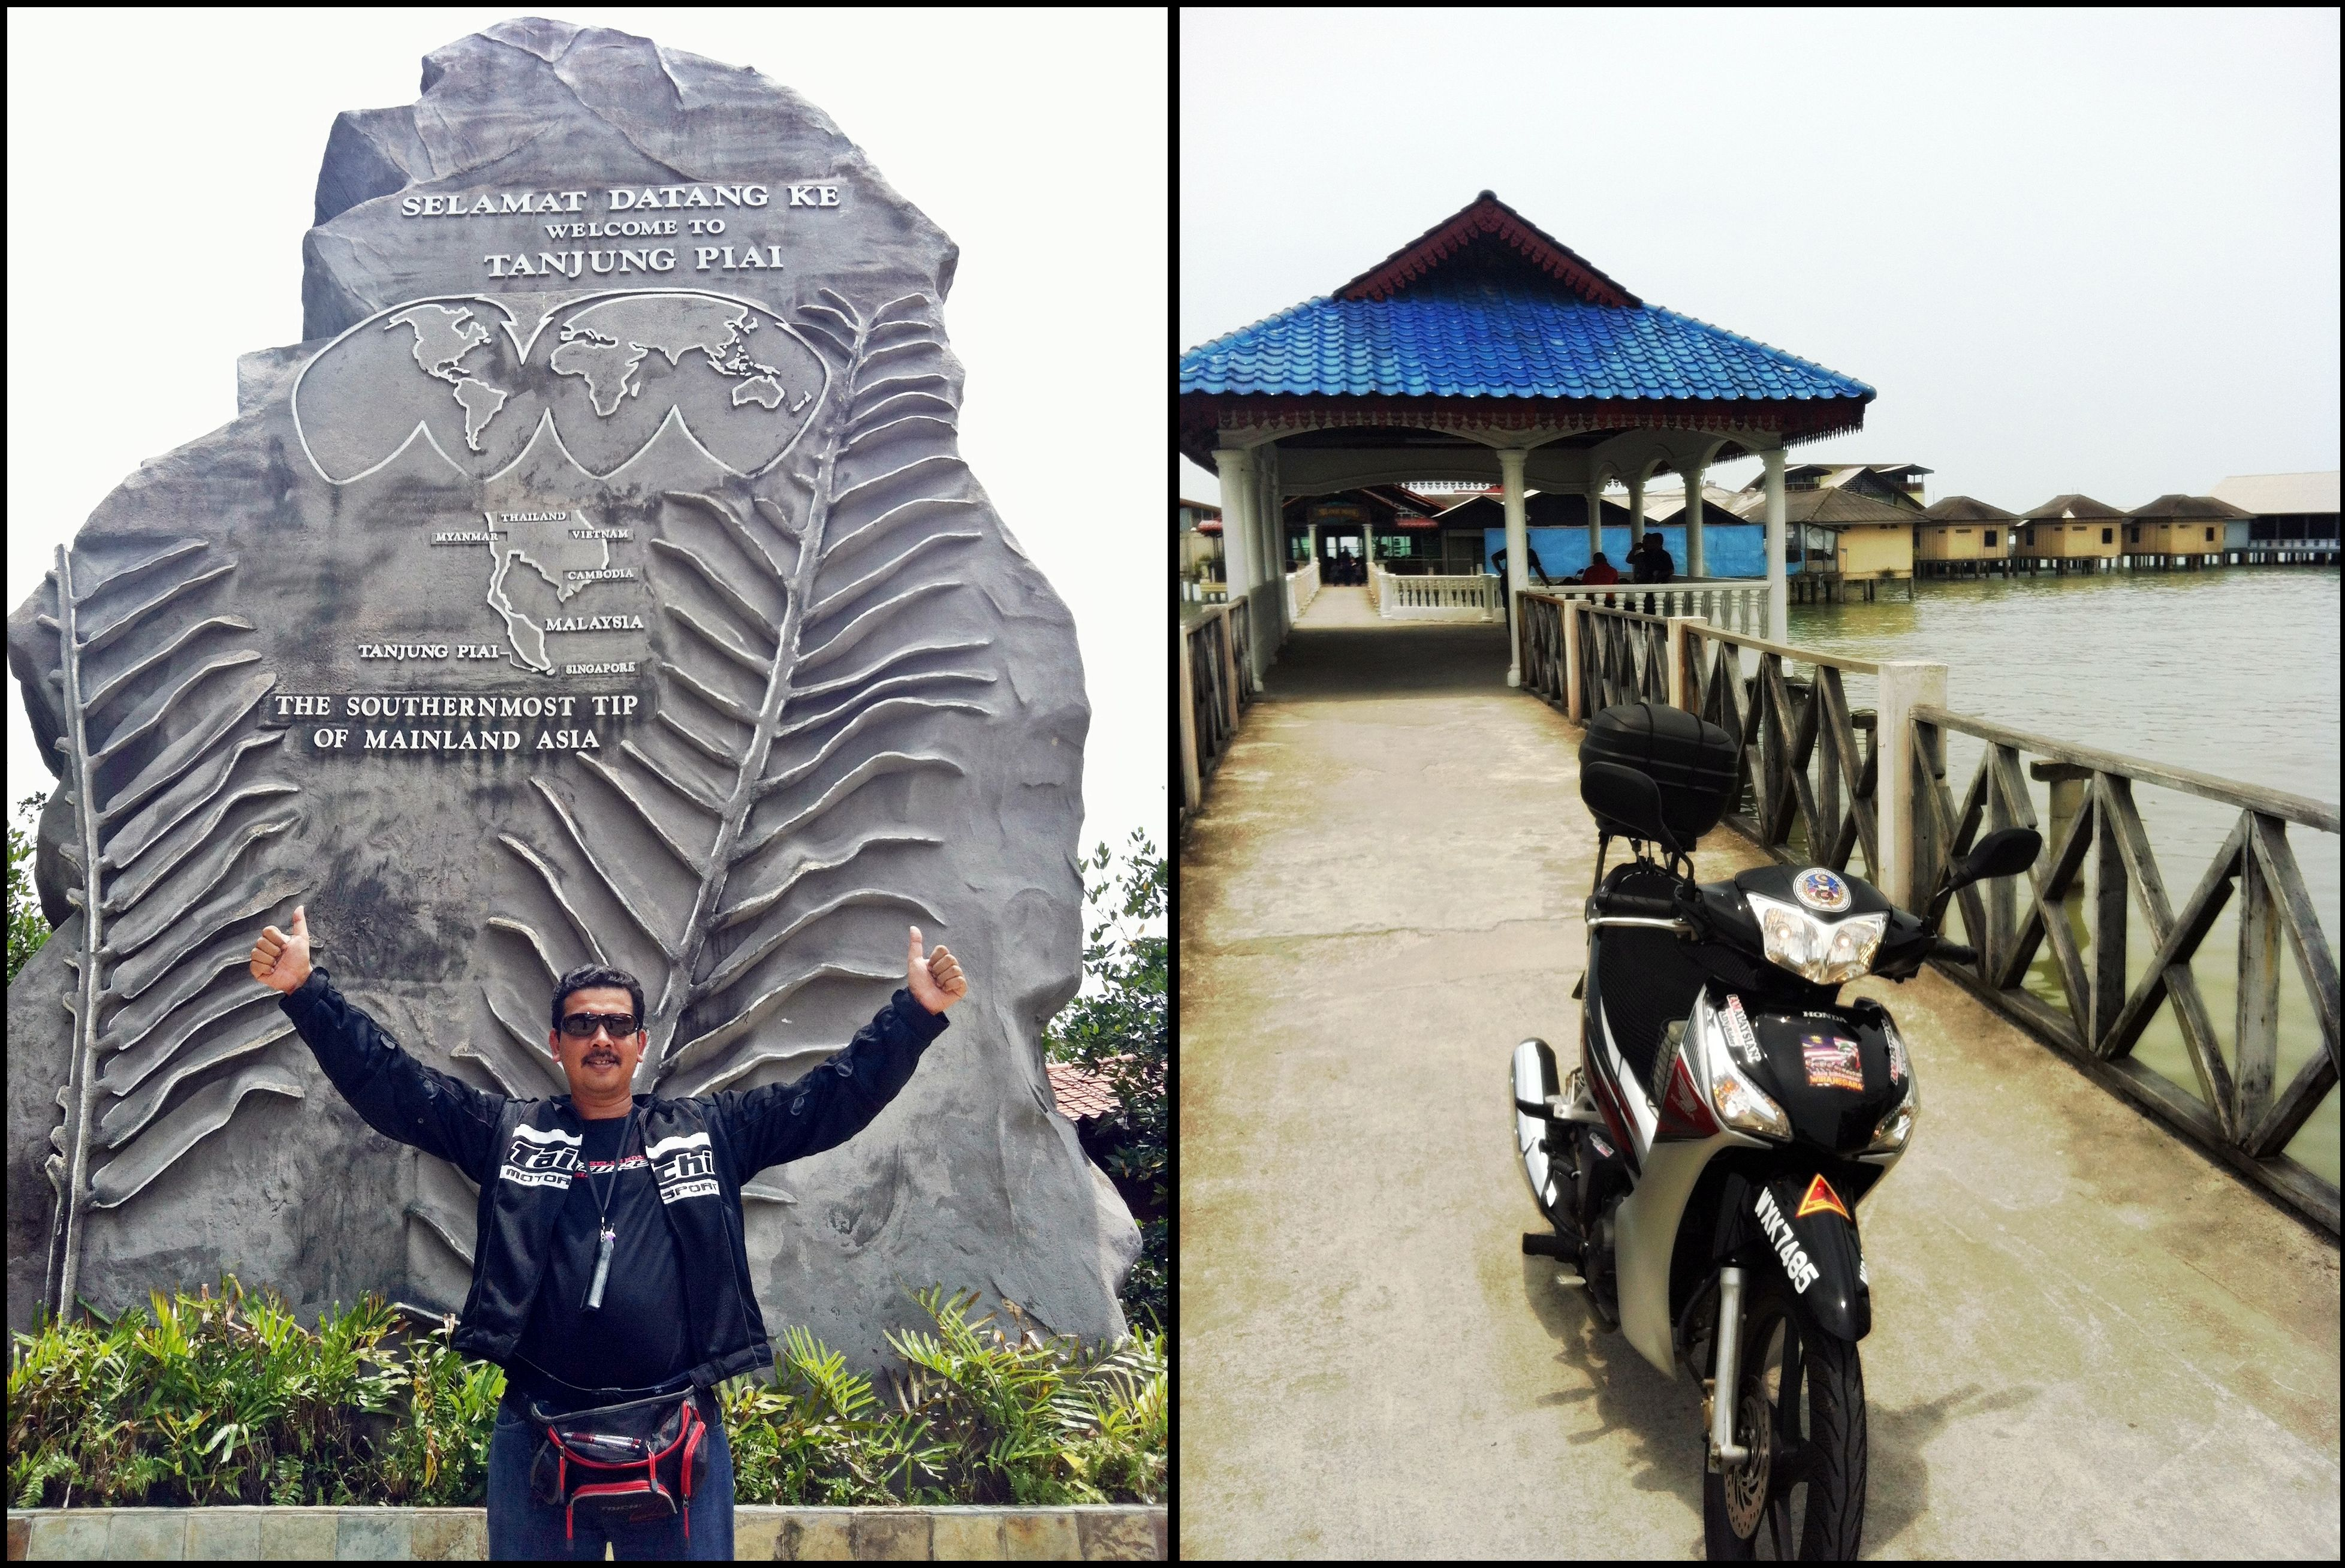 That is me! @ Tanjung Piai is a cape in Johor which is the ...